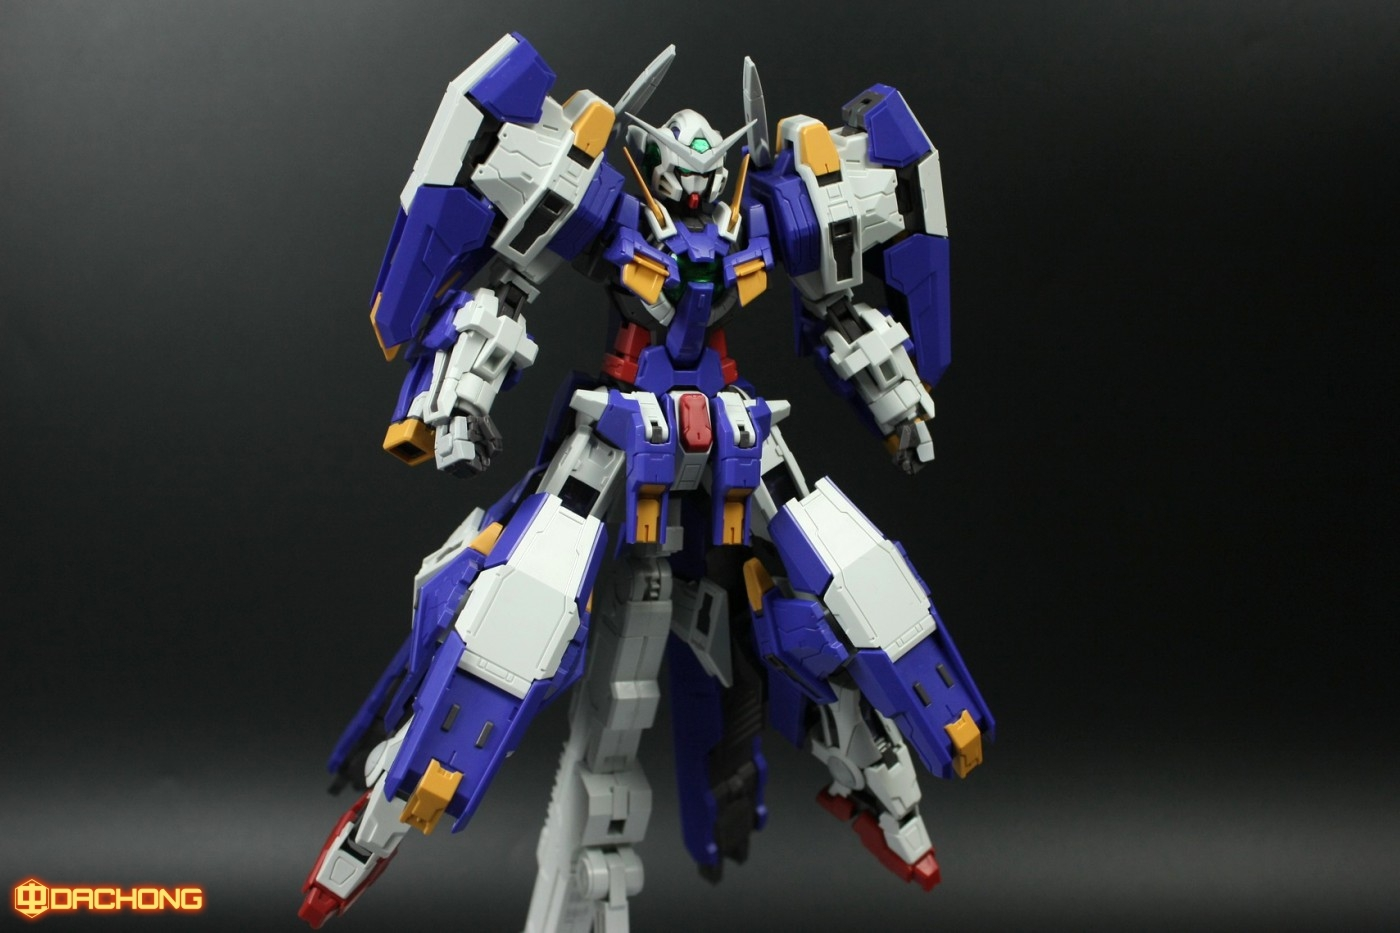 S254_MG_exia_HS_review_inask_089.jpg